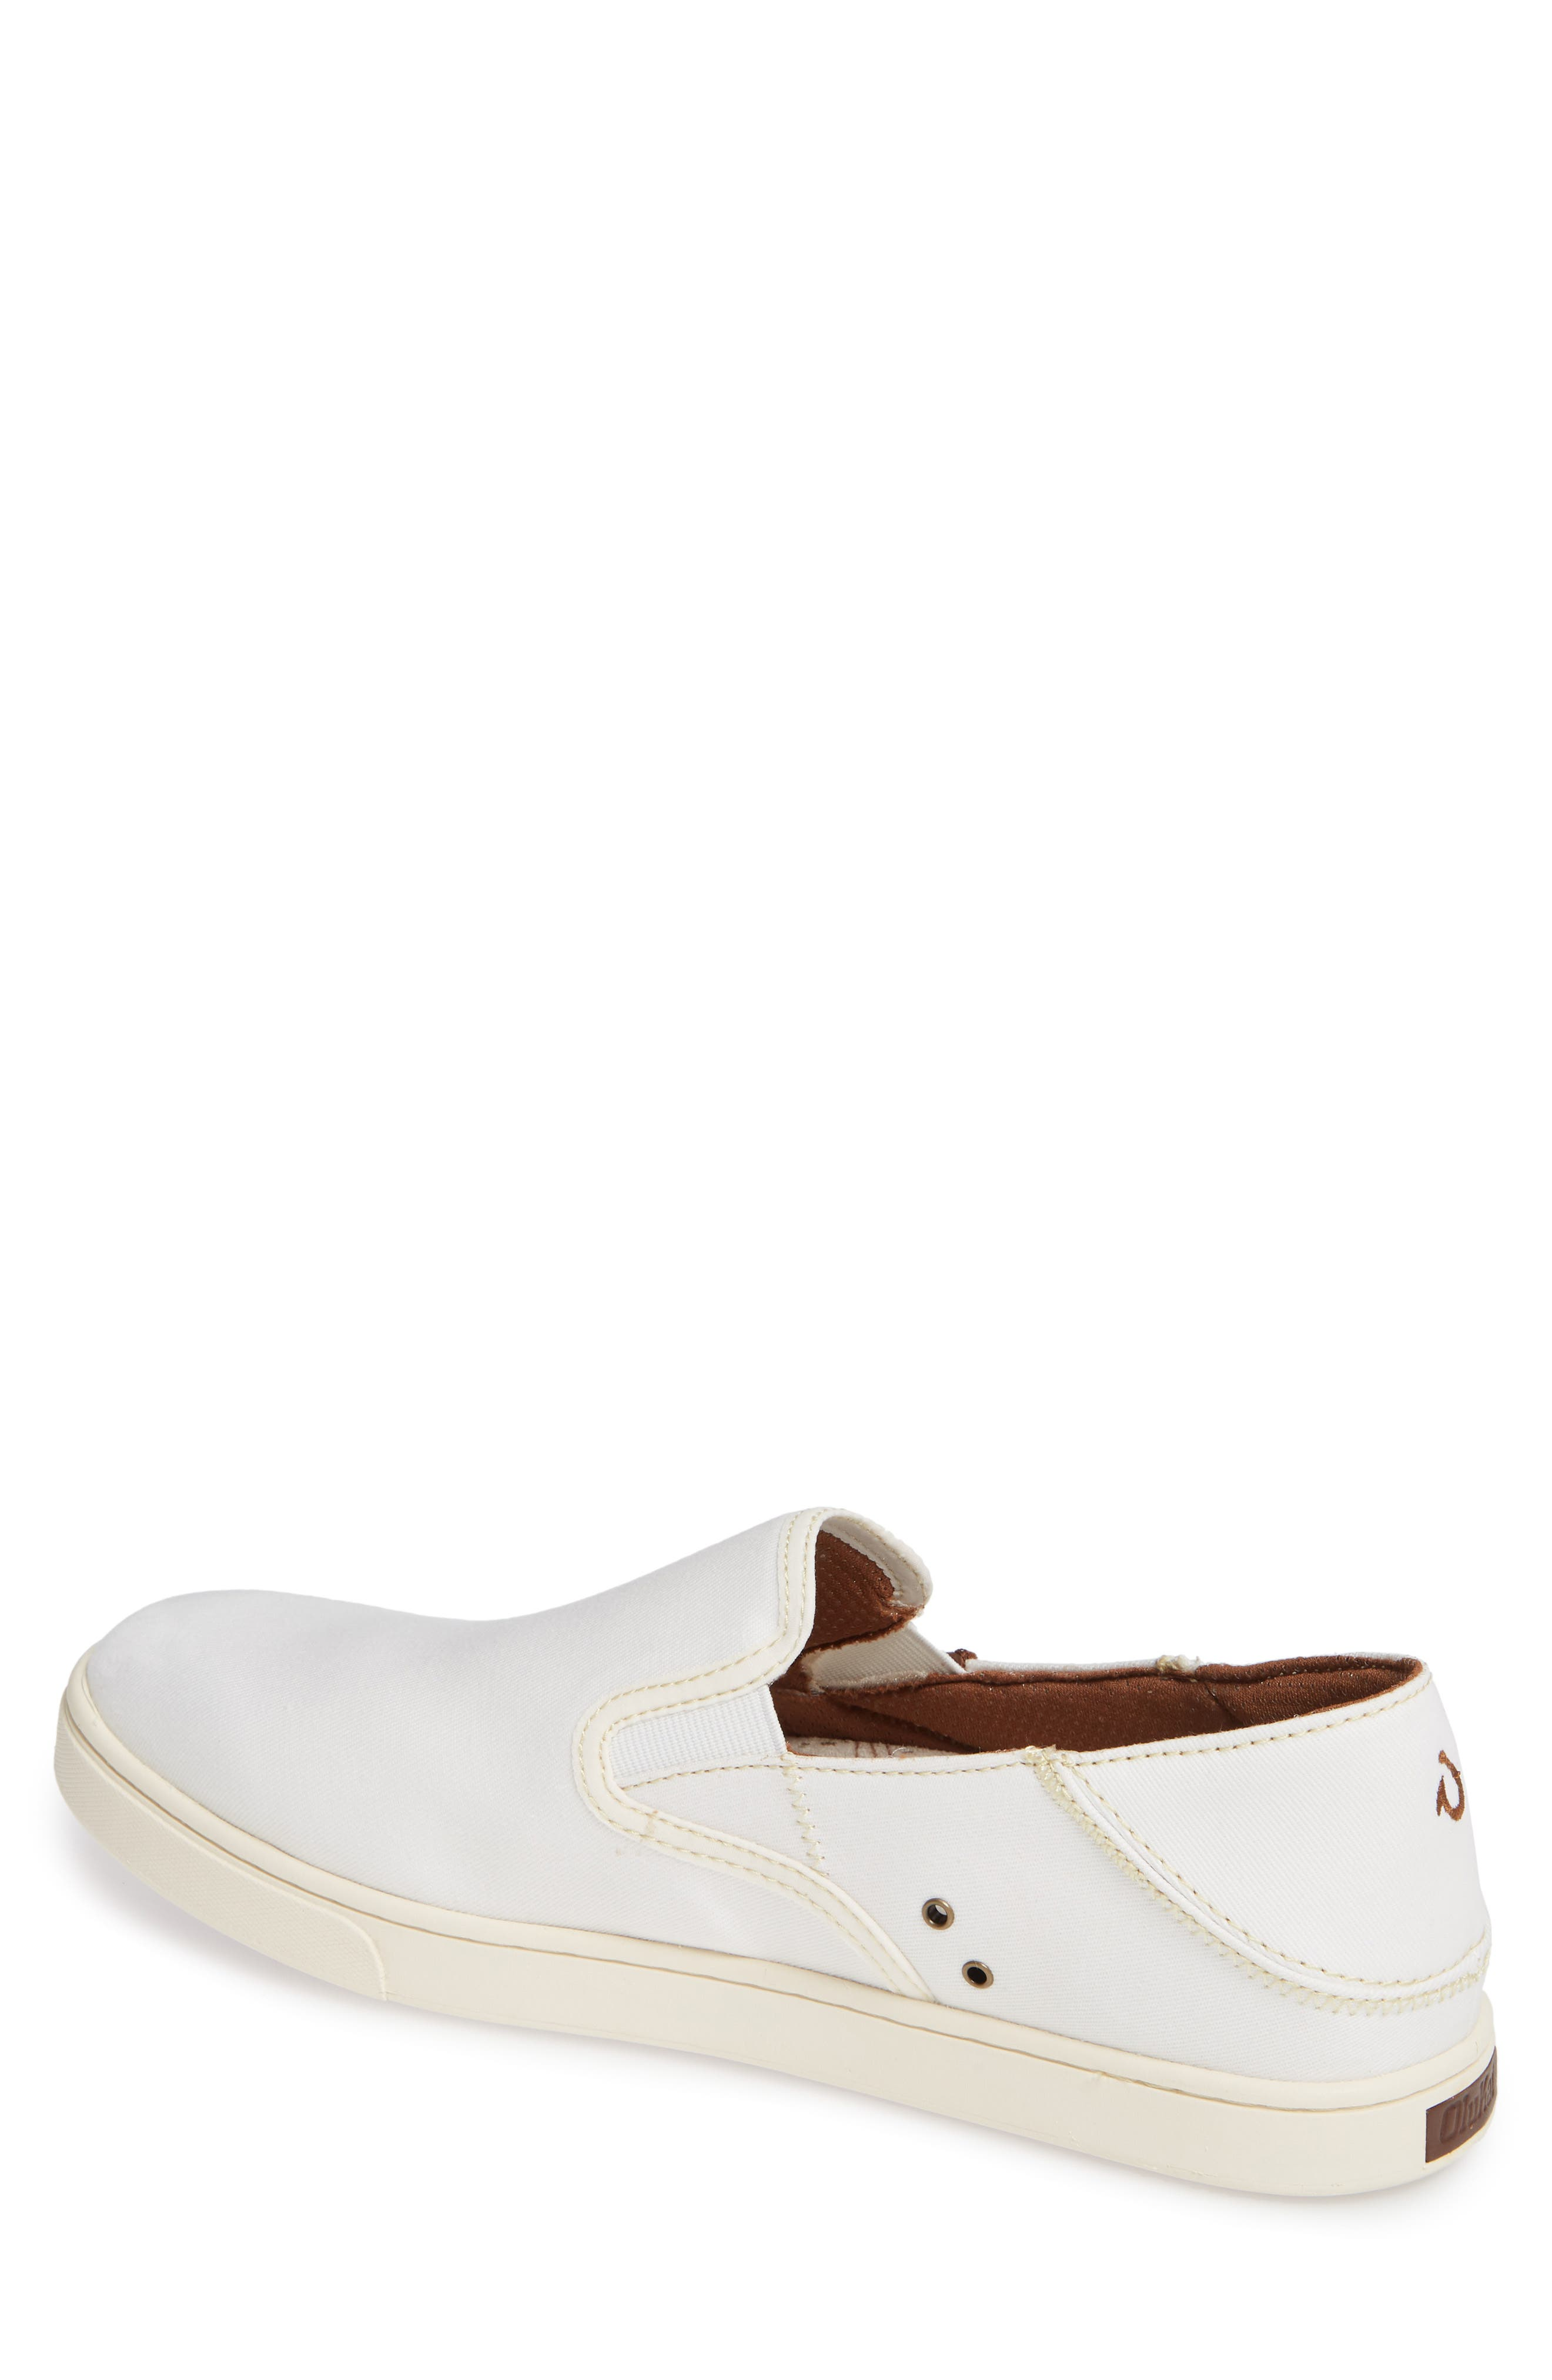 Kahu Collapsible Slip-On Sneaker,                             Alternate thumbnail 2, color,                             OFF WHITE/ OFF WHITE TEXTILE